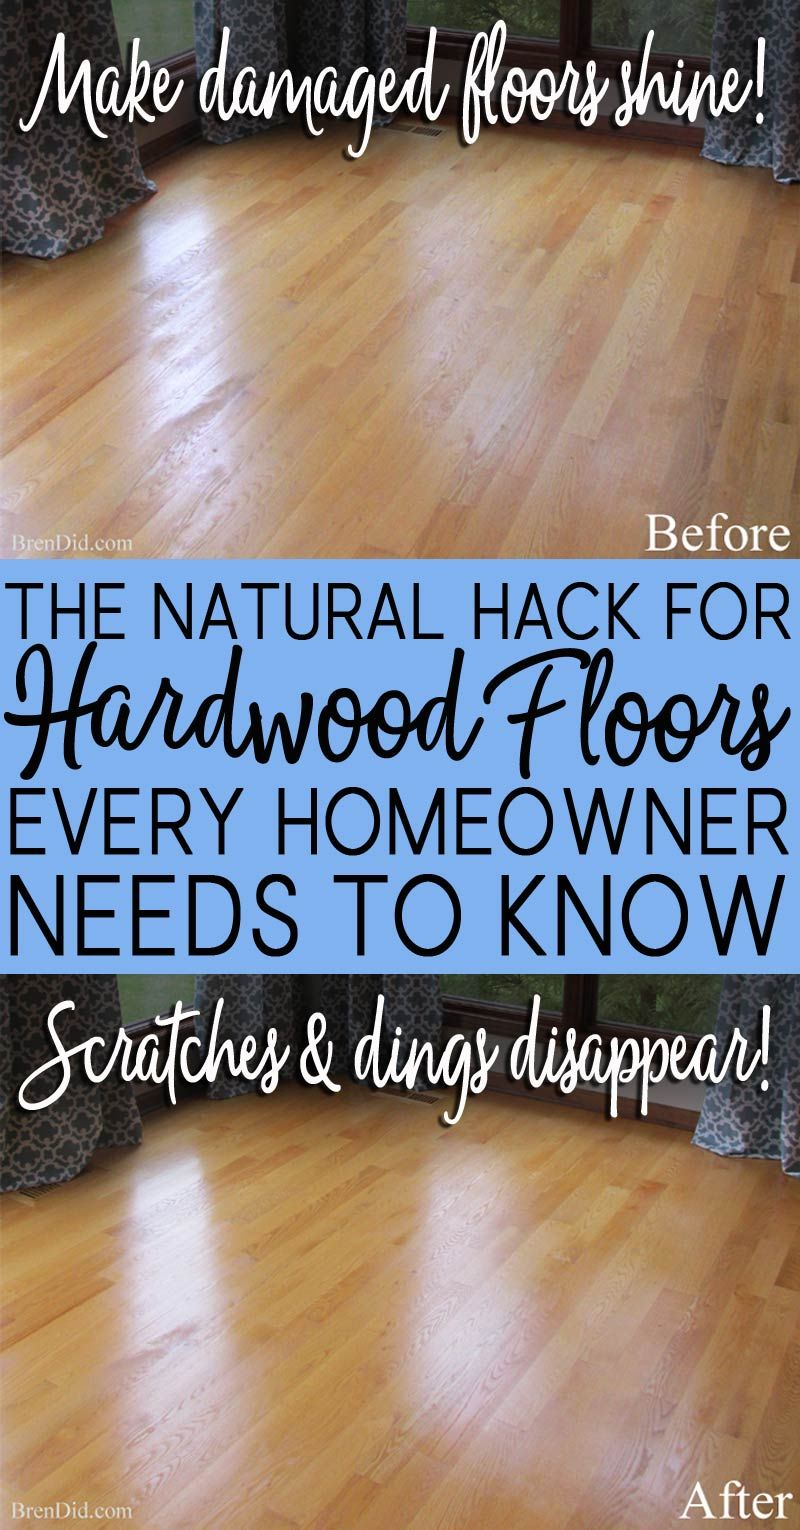 Natural Rer For Hardwood Floors